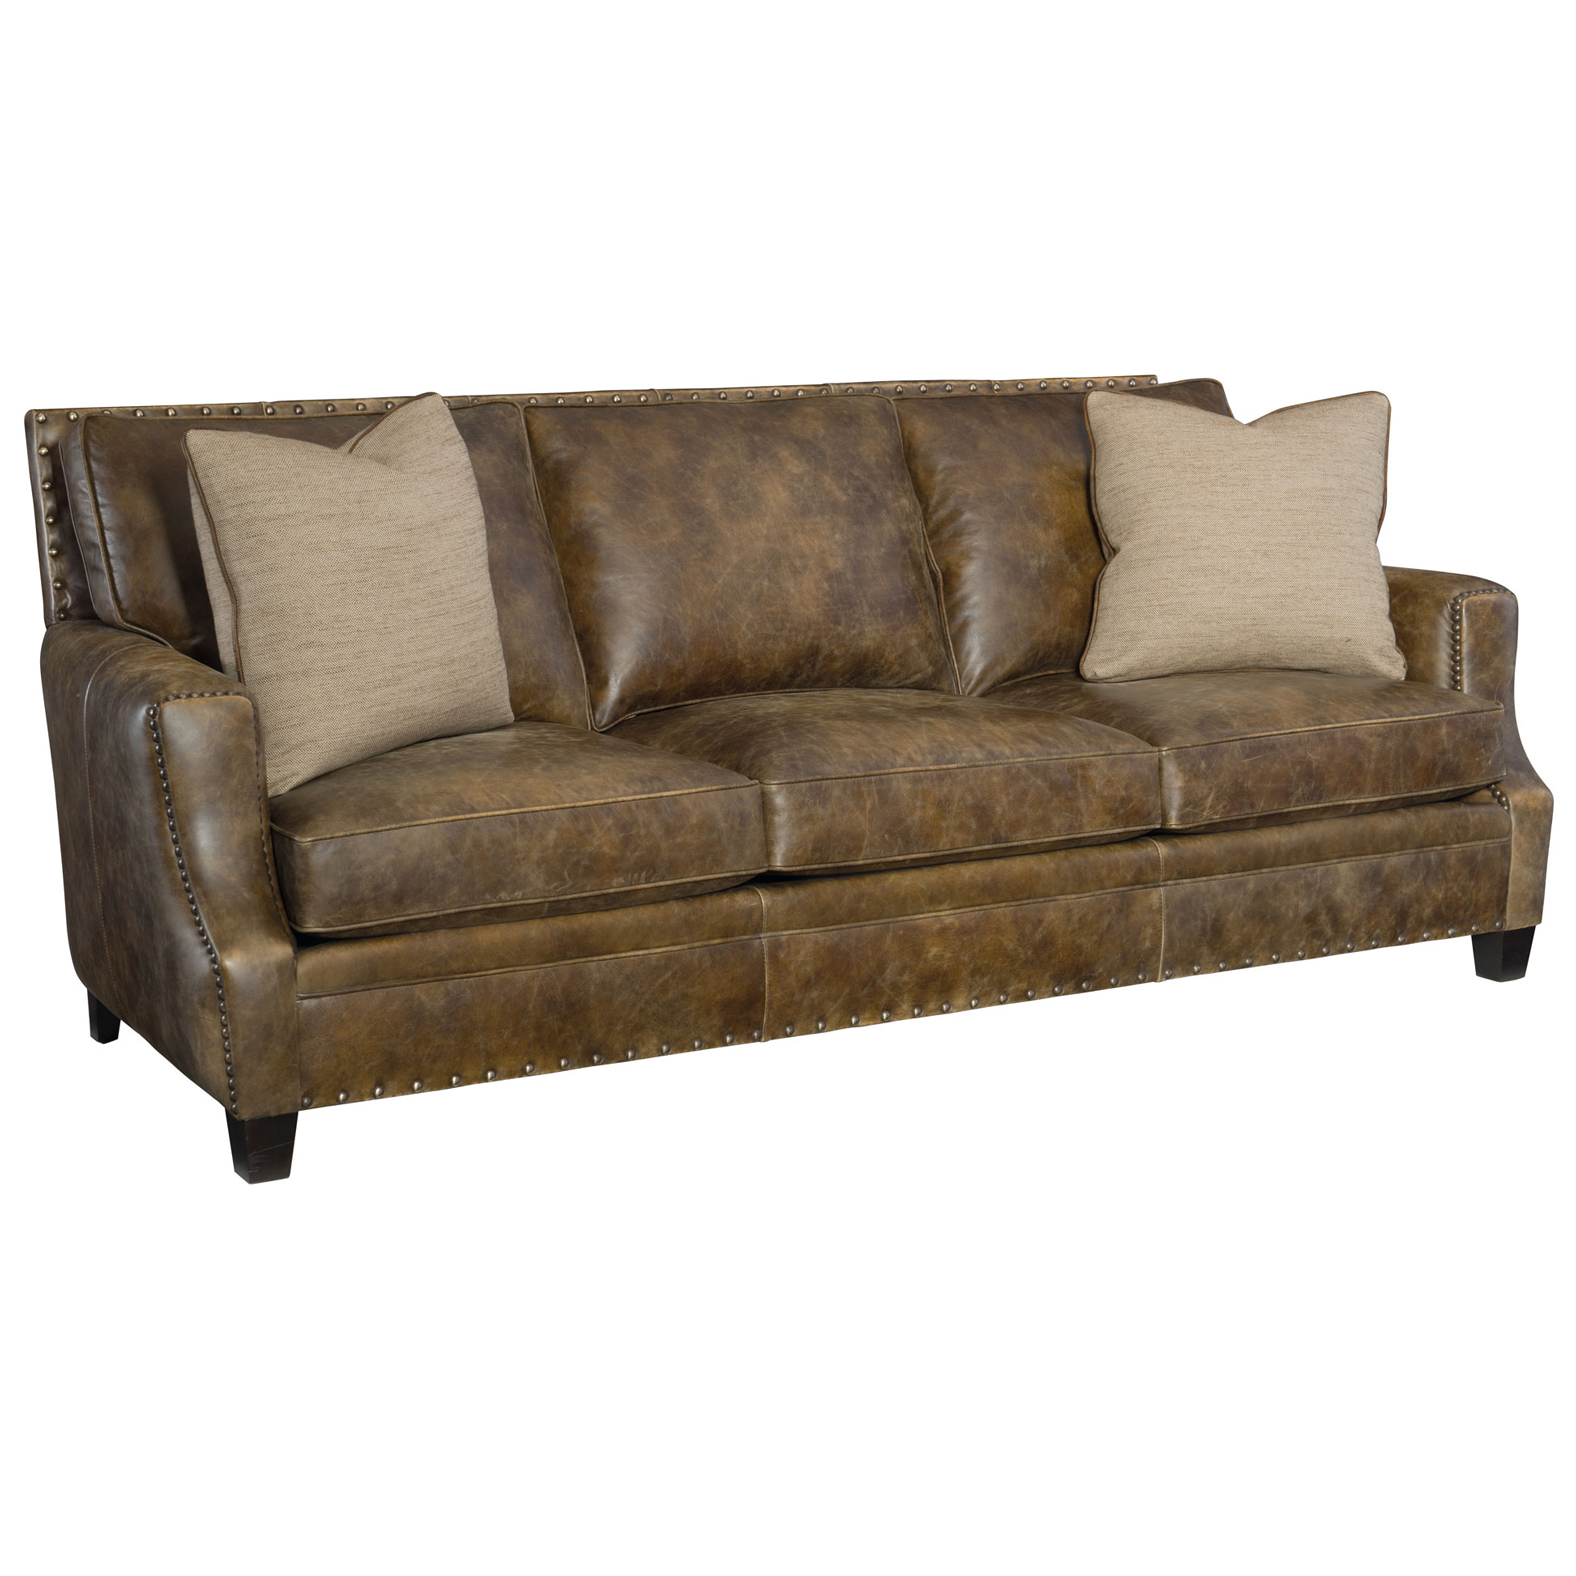 Bernhardt sofa reviews luxefinds decor shopping engine for Bernhardt furniture